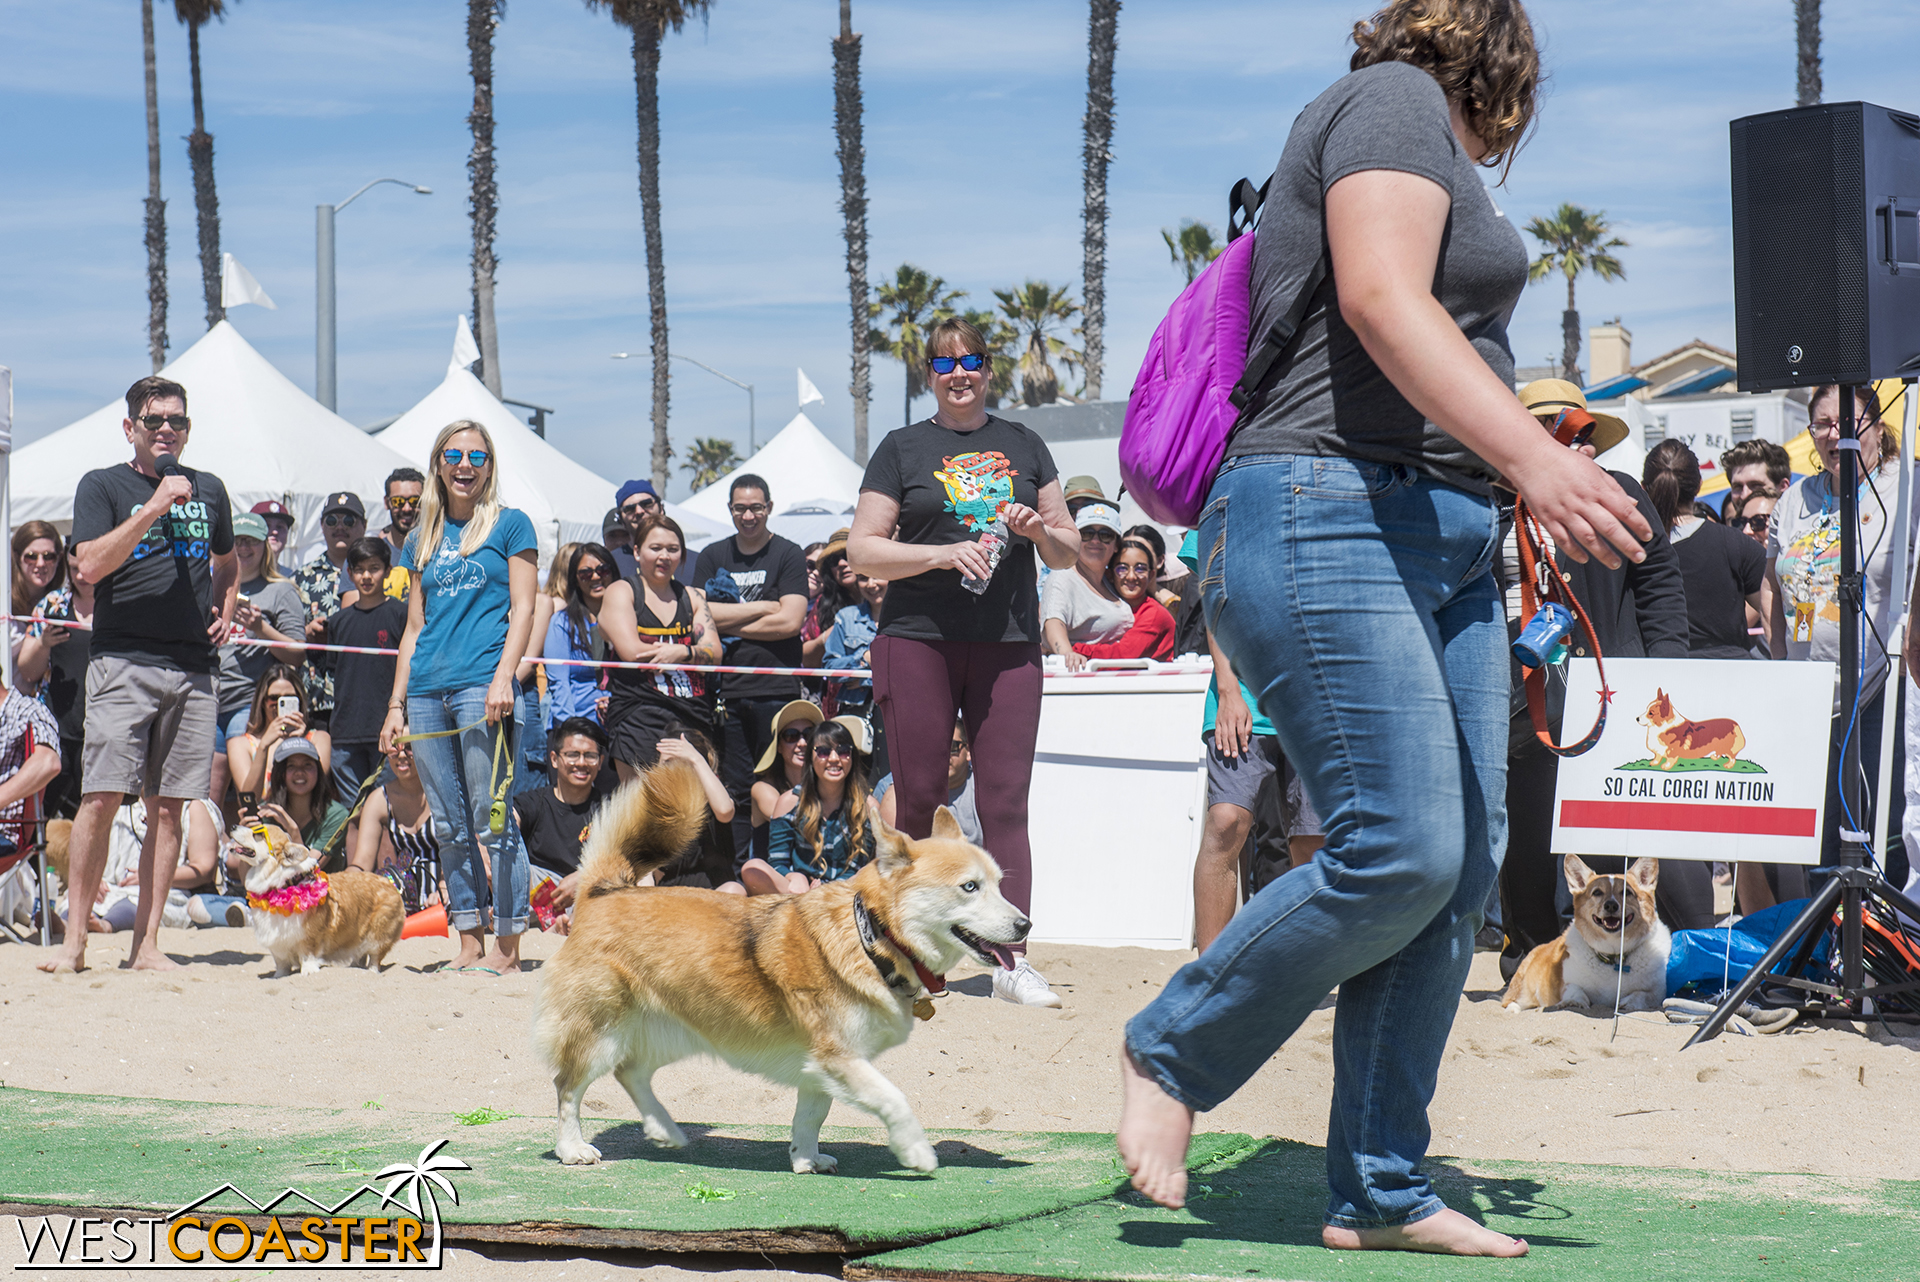 The corgis prance down the runway, showing off their moneymakers.